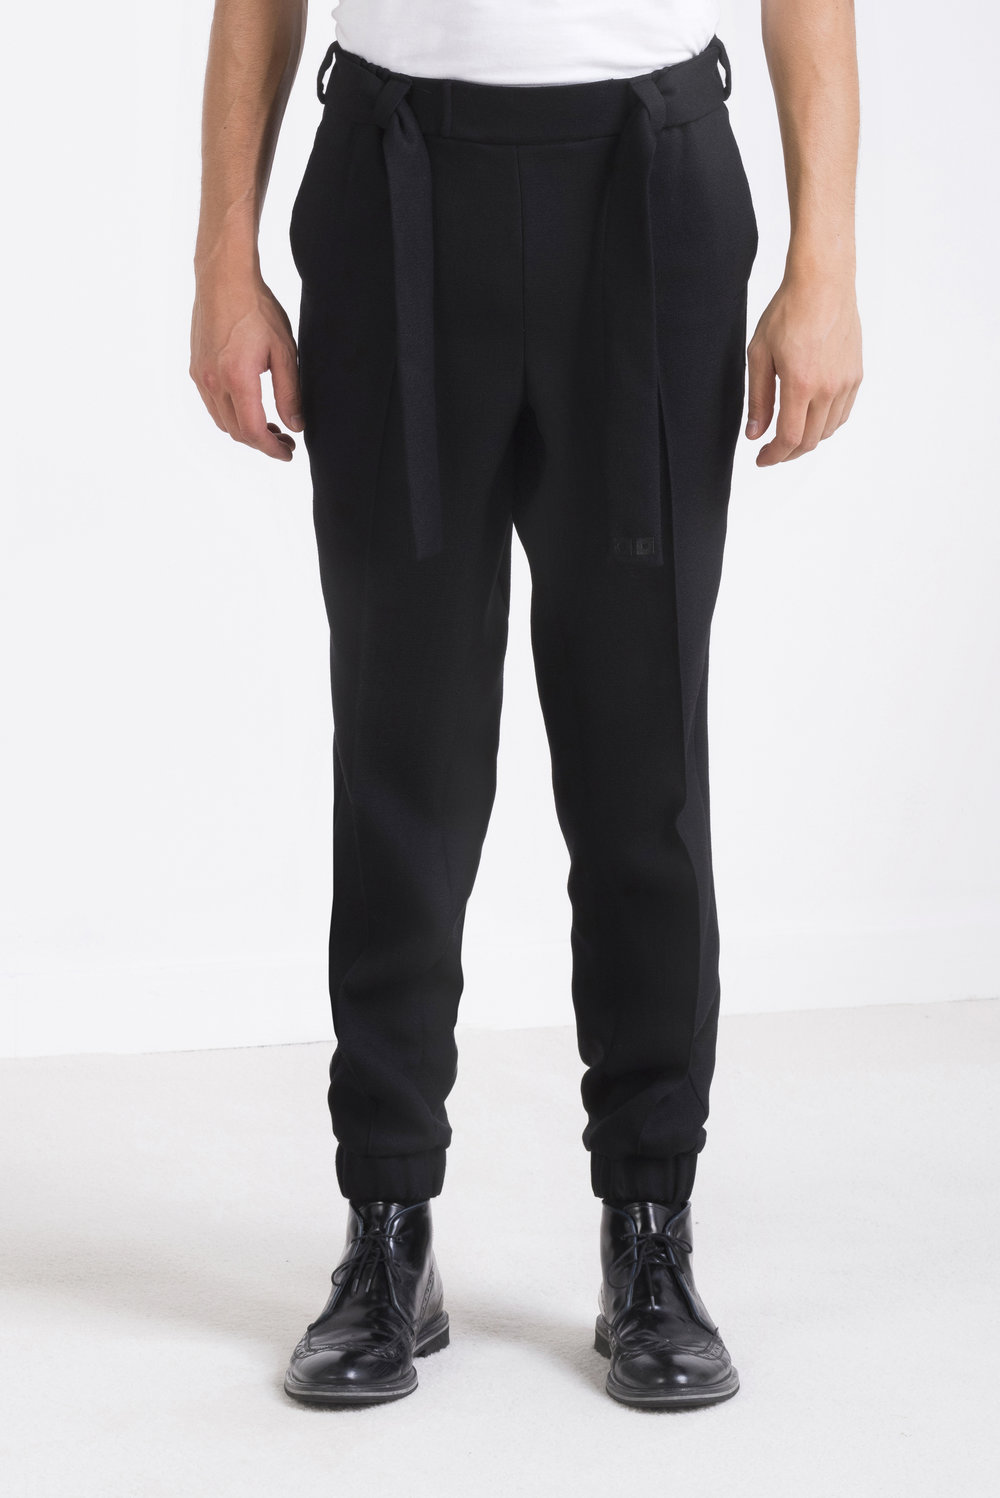 oneculture Wool track pants 2.jpg